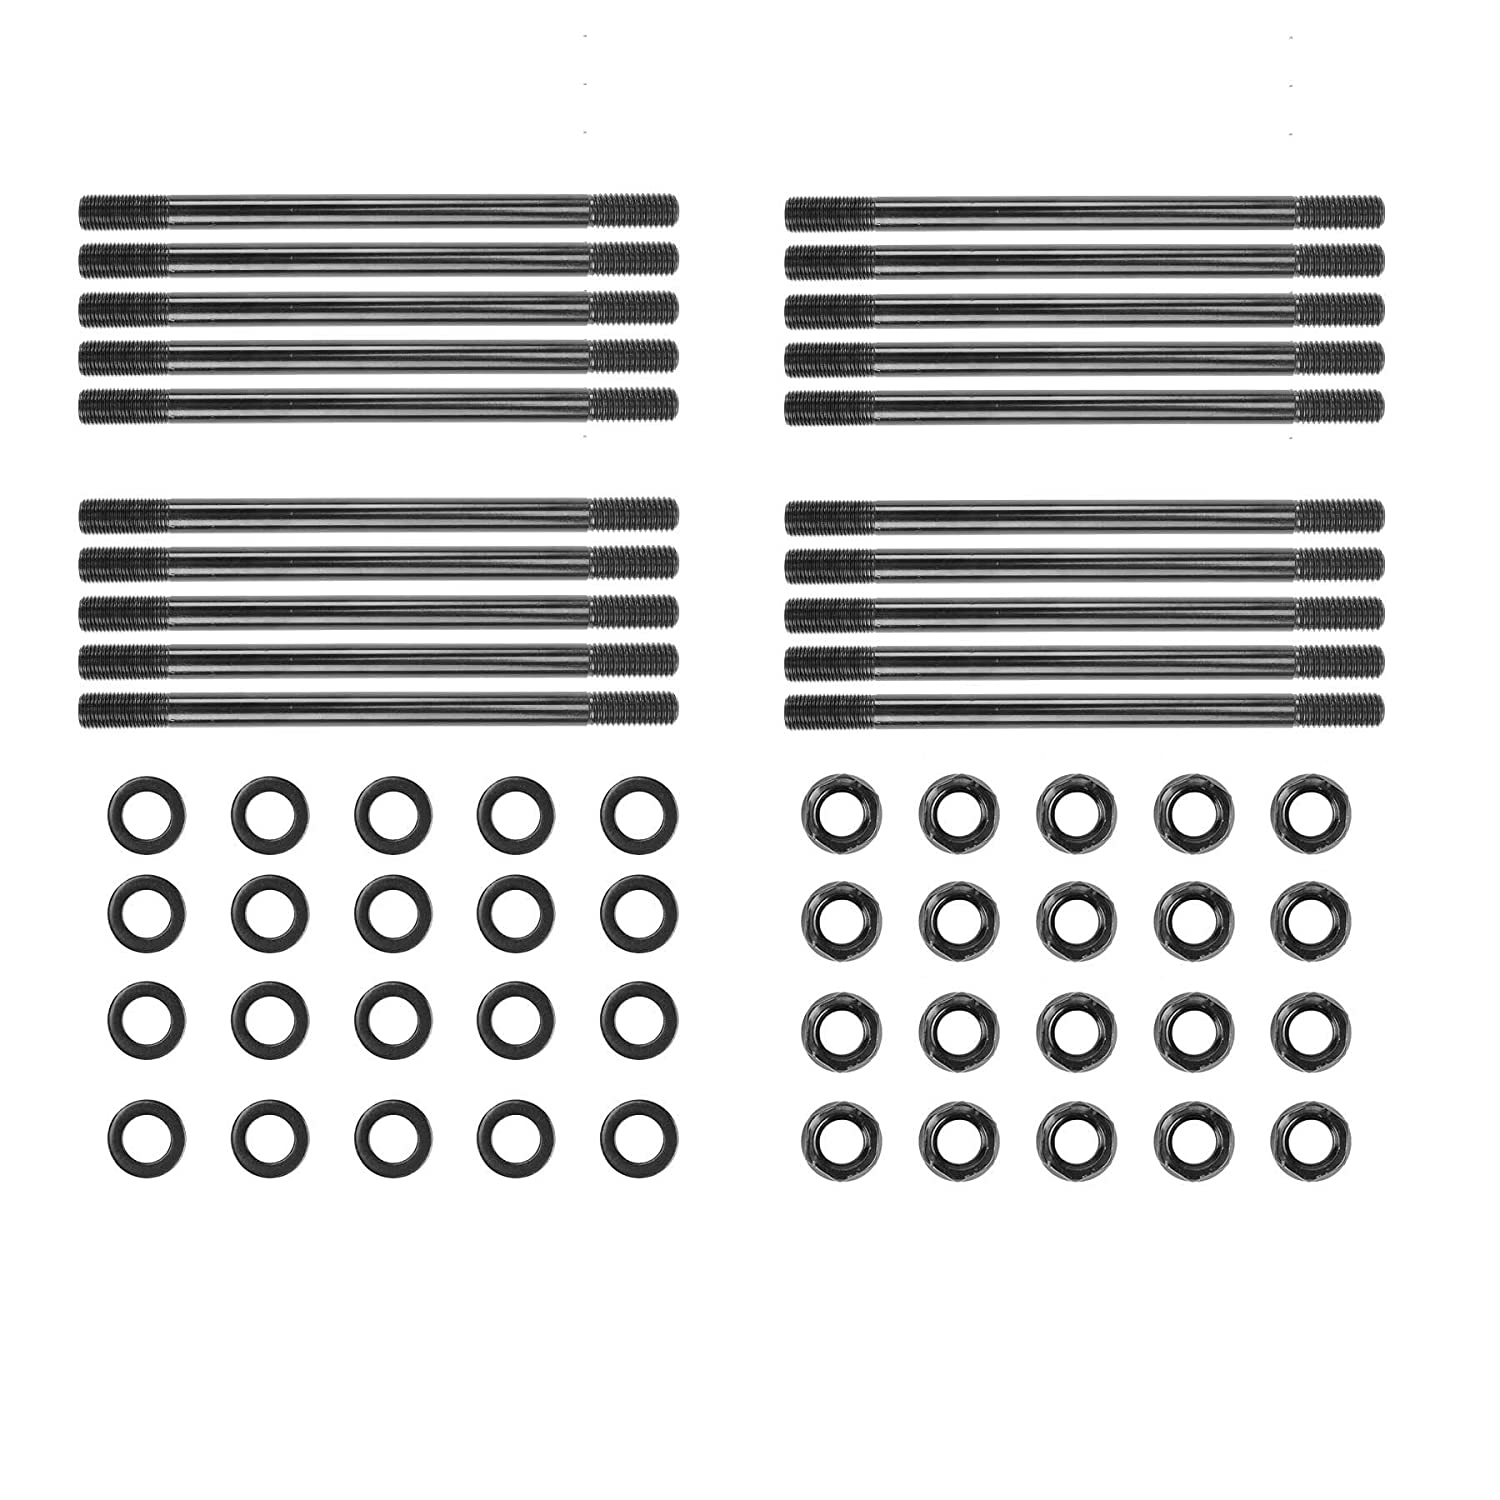 Orion Motor Tech 20 PCS High Strength Cylinder Head Stud Kit for 2003-2007 Ford 6.0L Diesel Powerstroke Engine, Replaces # 250-4202